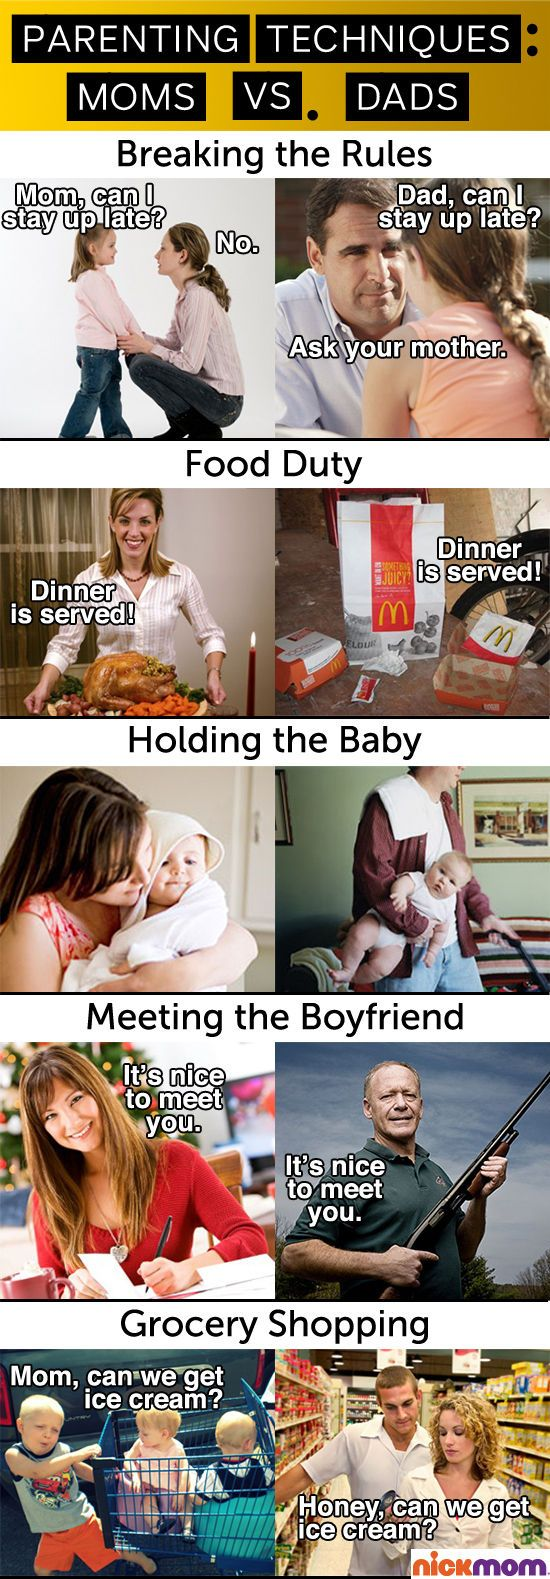 Parenting Techniques: Moms vs. Dads | More LOLs & Funny Stuff for Moms | NickMom